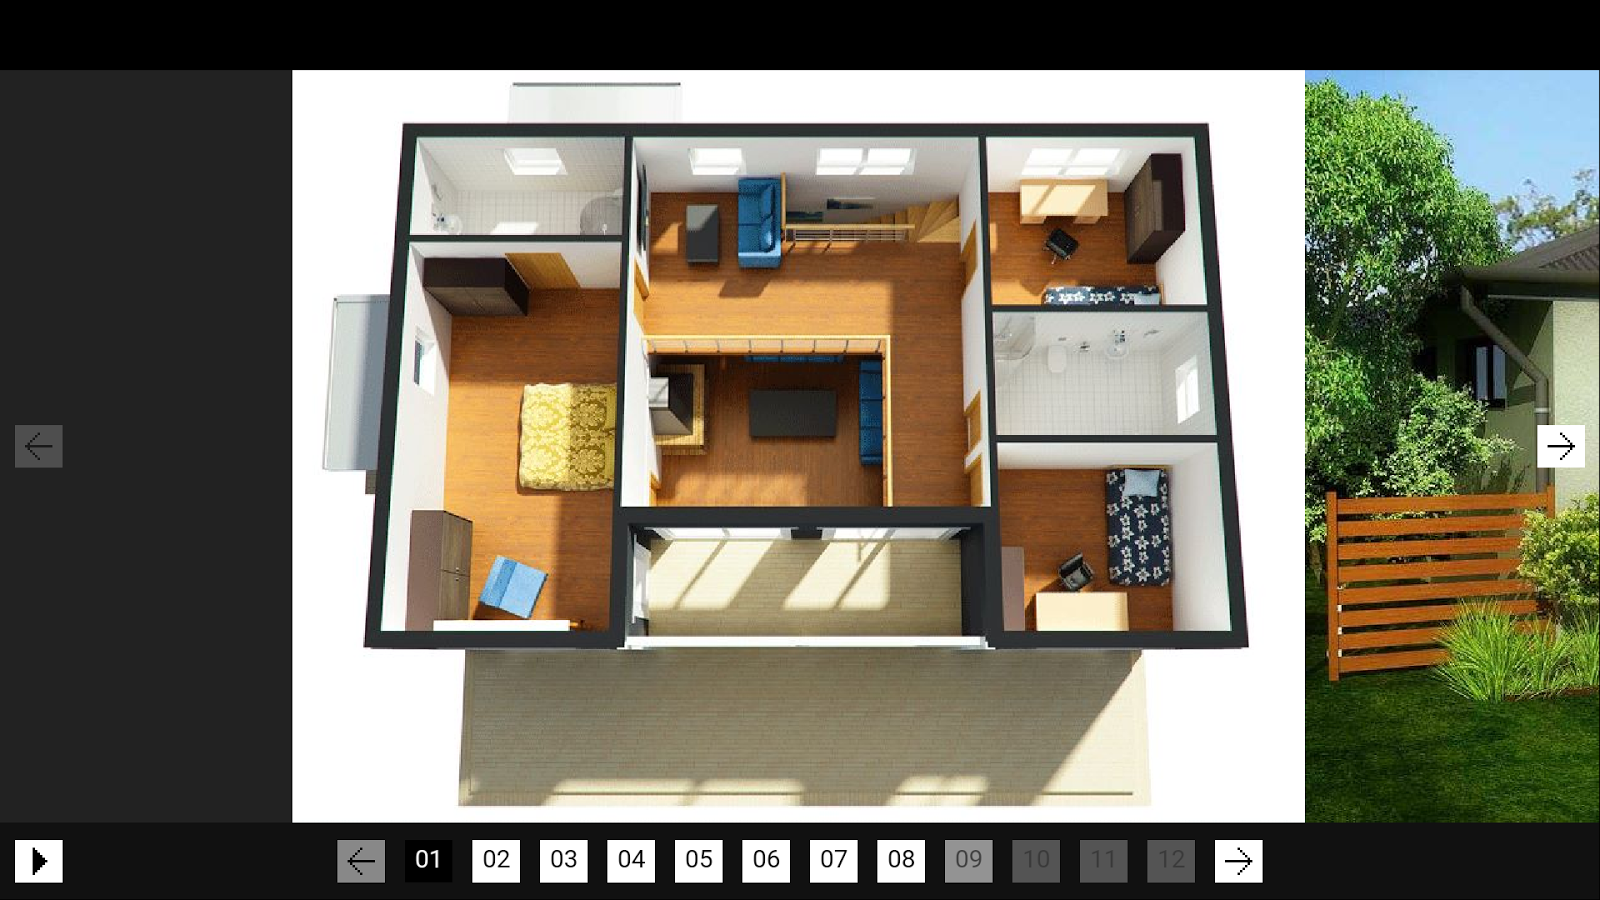 3d model home android apps on google play 3d model home screenshot malvernweather Images